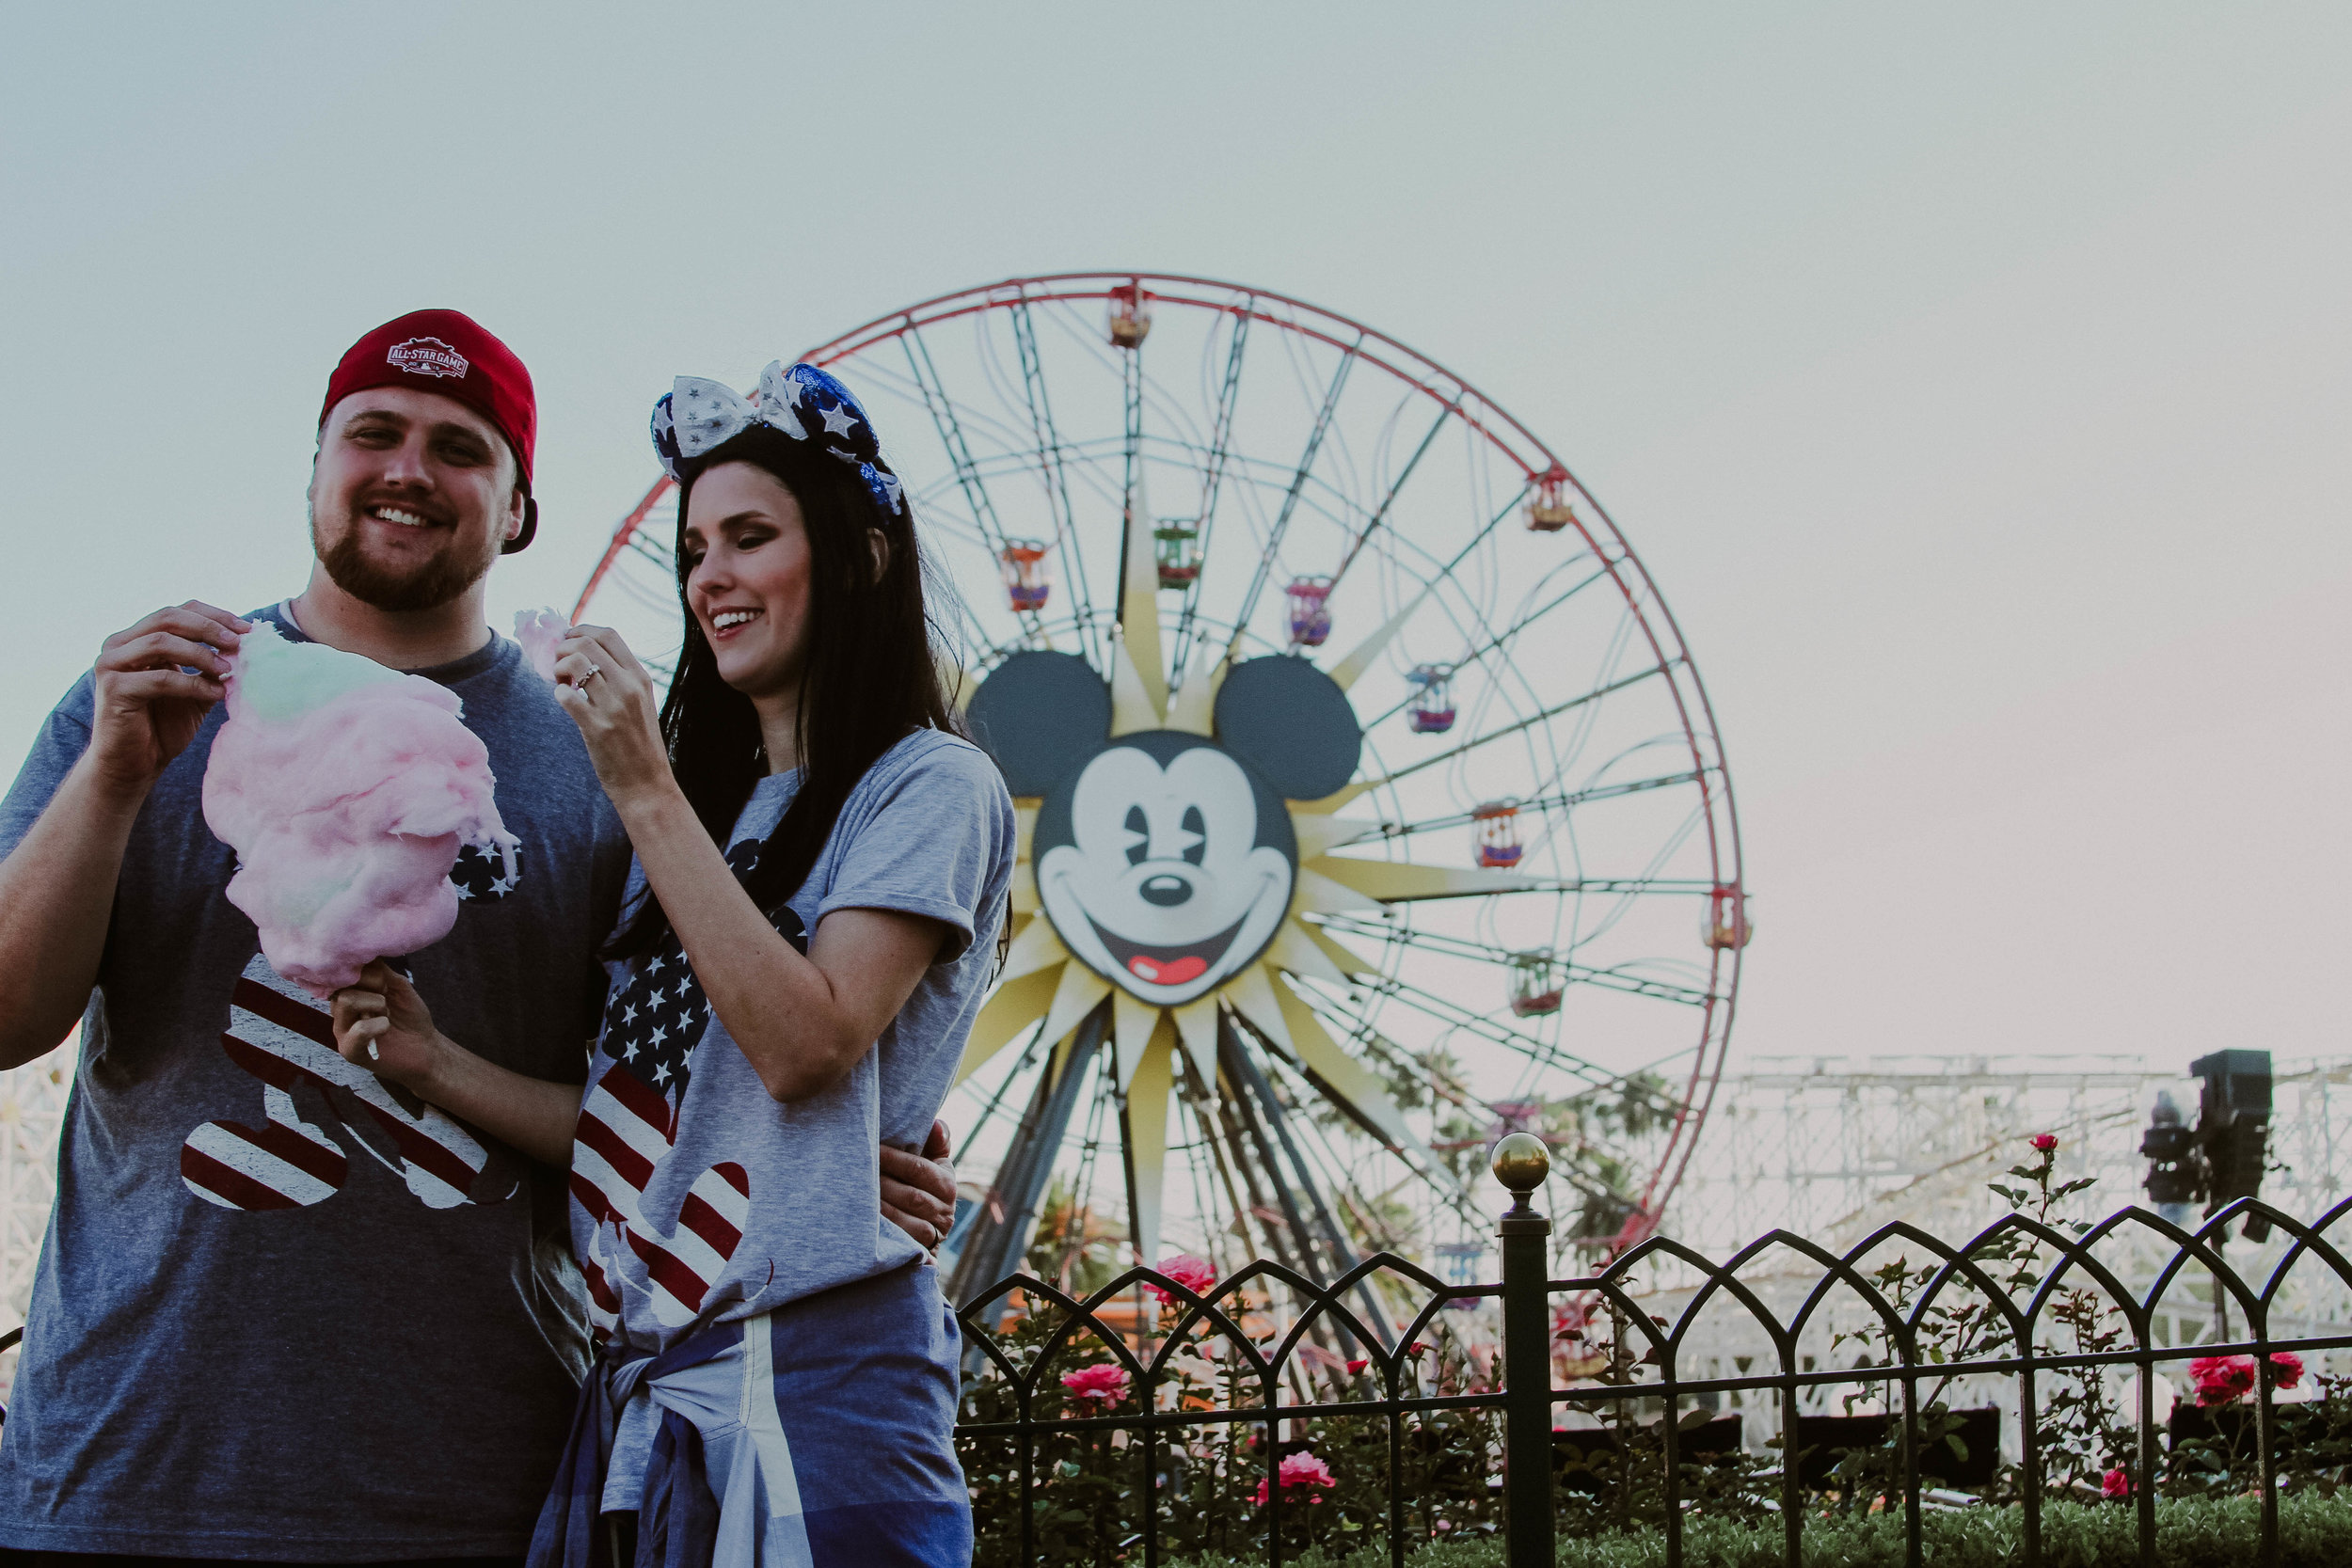 The last time we were at Disneyland on 4th of July!